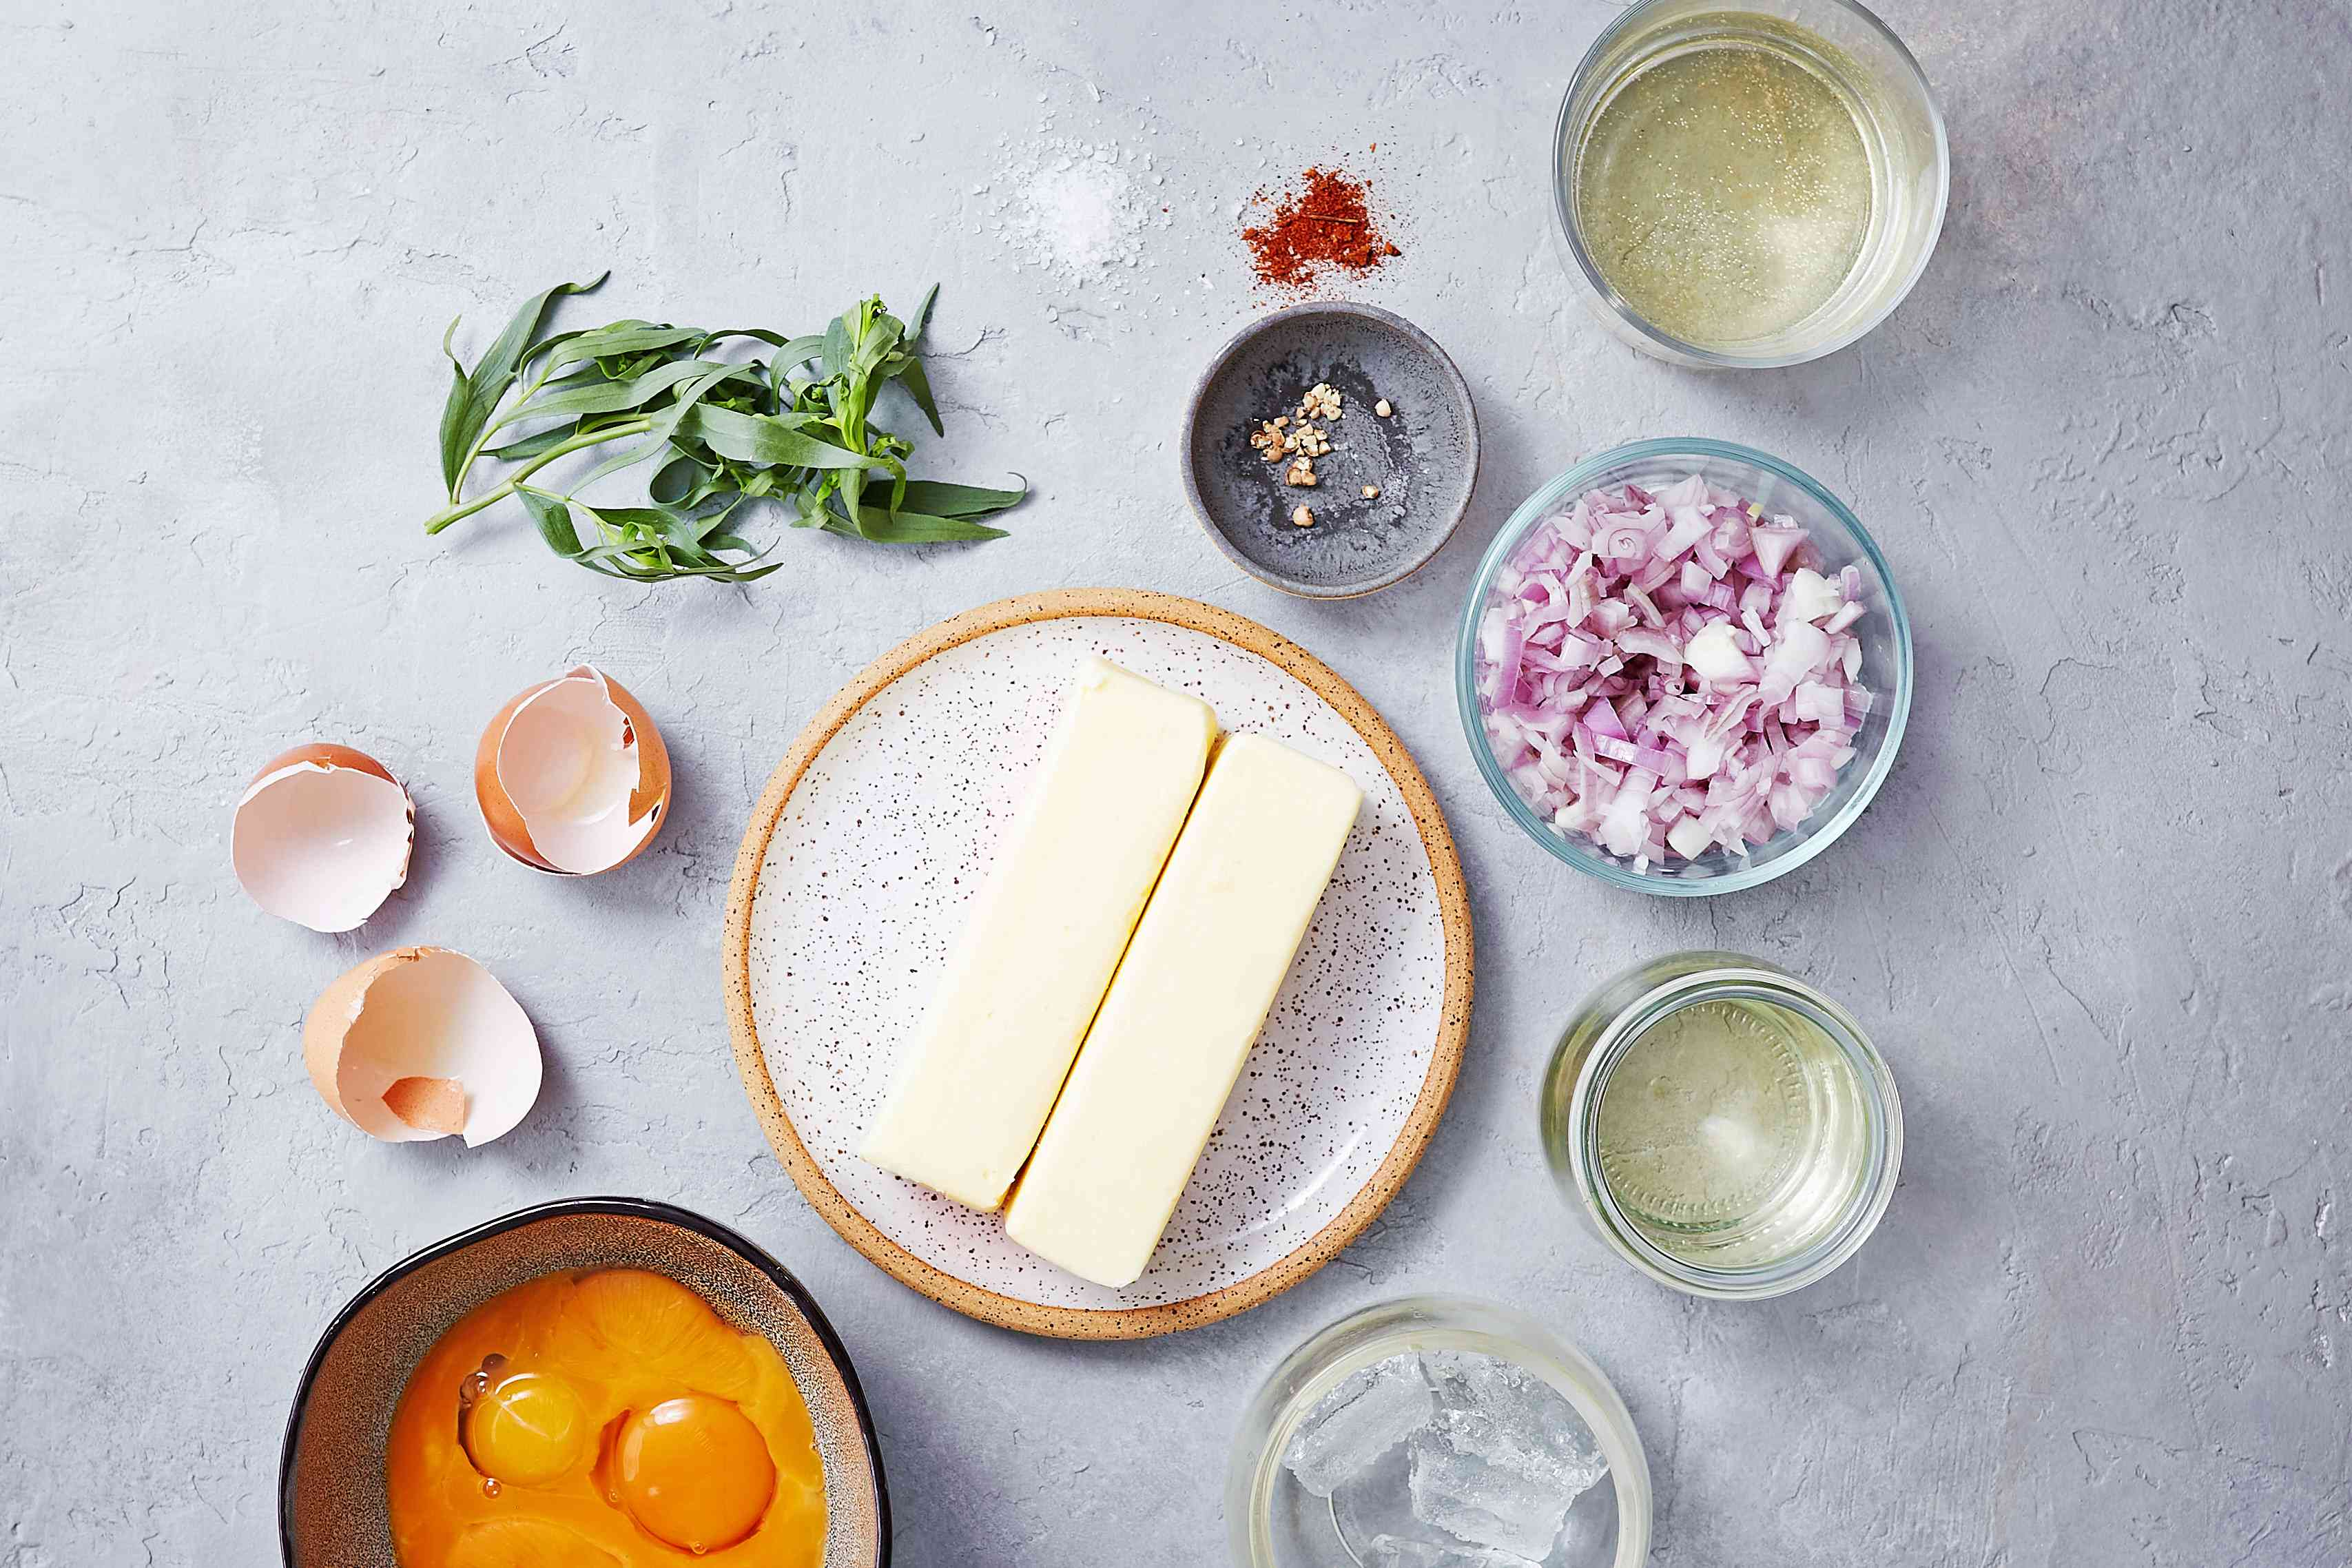 Ingredients for classic bearnaise sauce